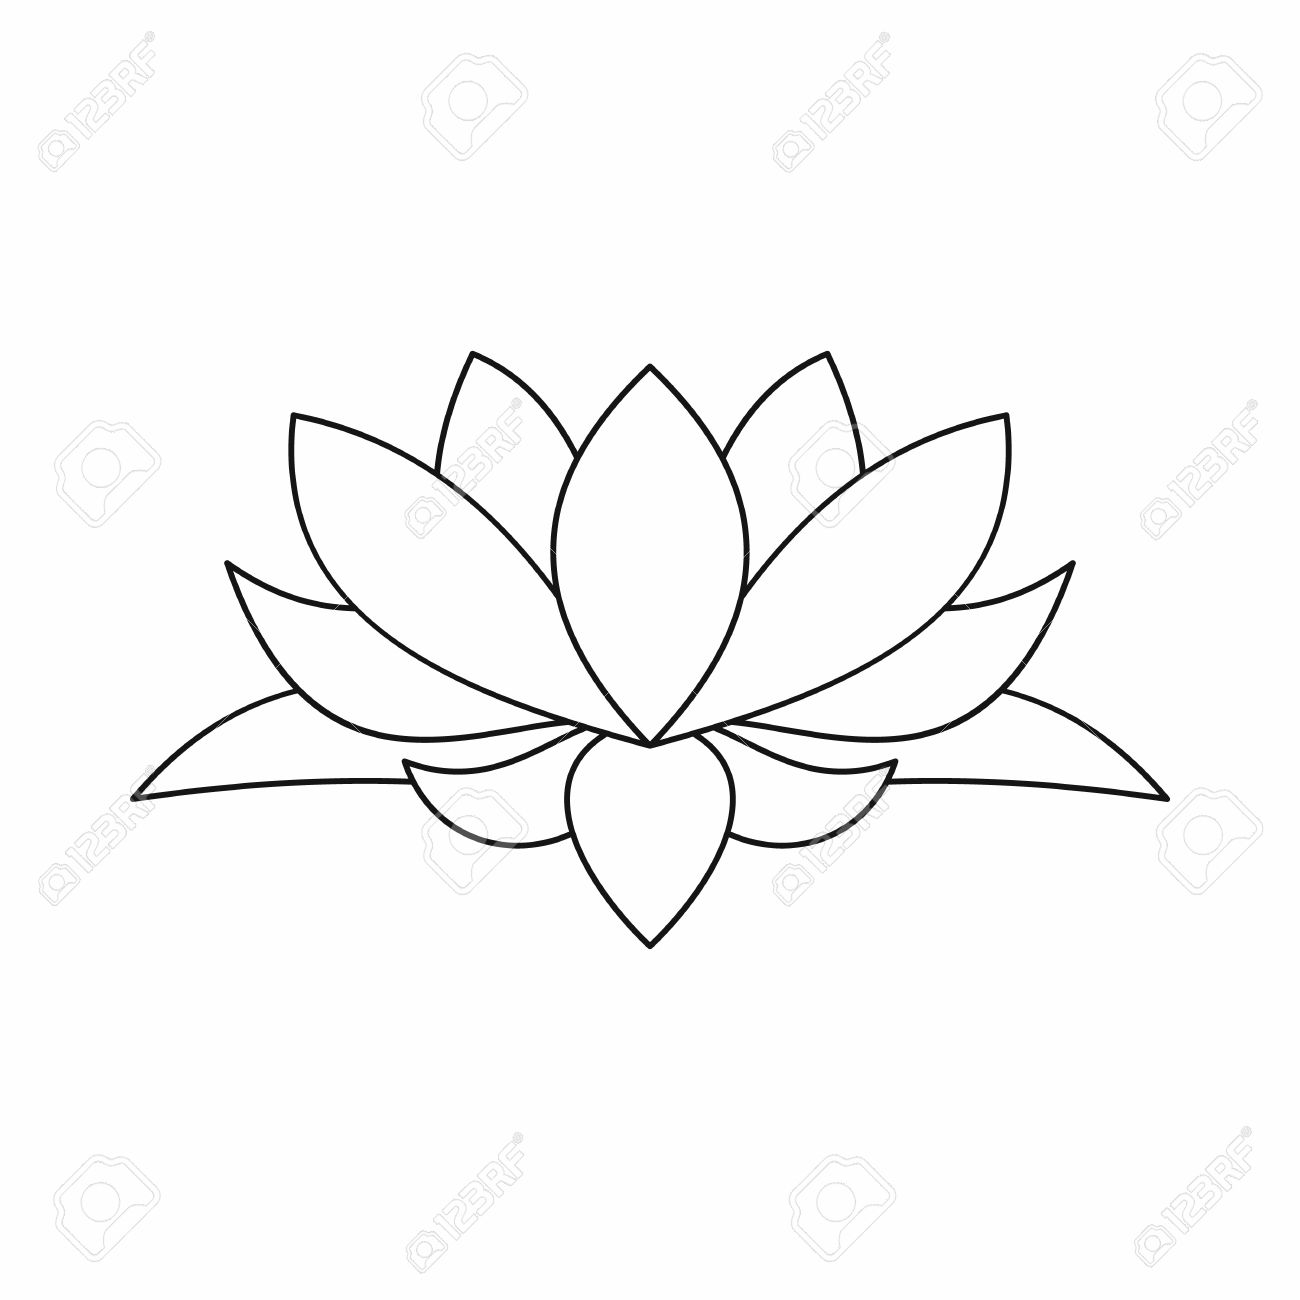 Lotus flower drawing pictures at getdrawings free for personal 1300x1300 lotus flower outline drawing izmirmasajfo